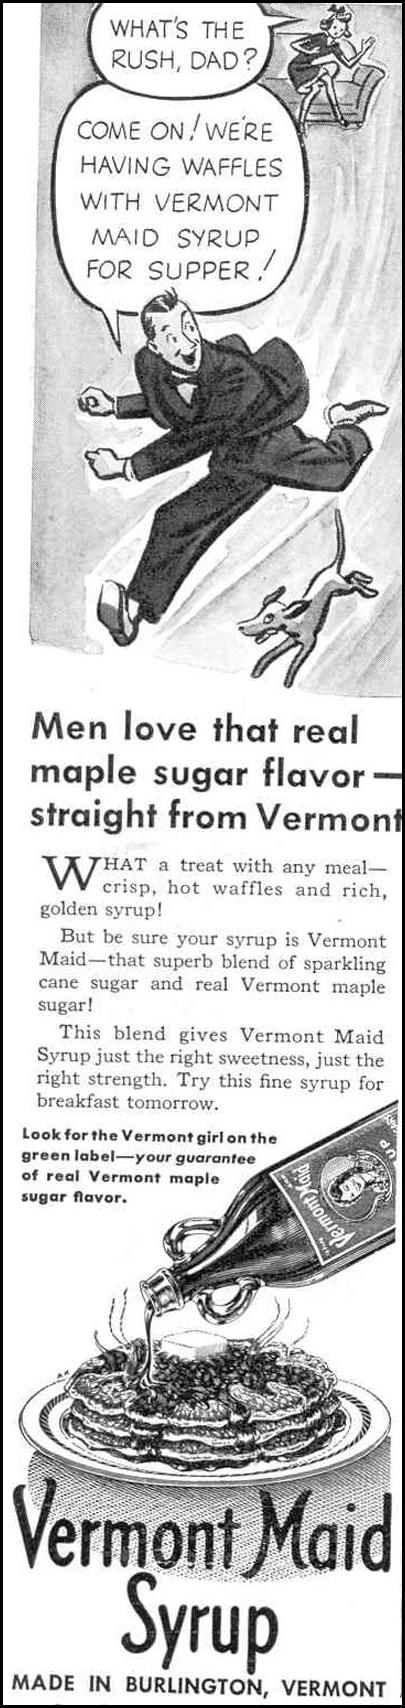 VERMONT MAID SYRUP GOOD HOUSEKEEPING 03/01/1940 p. 144